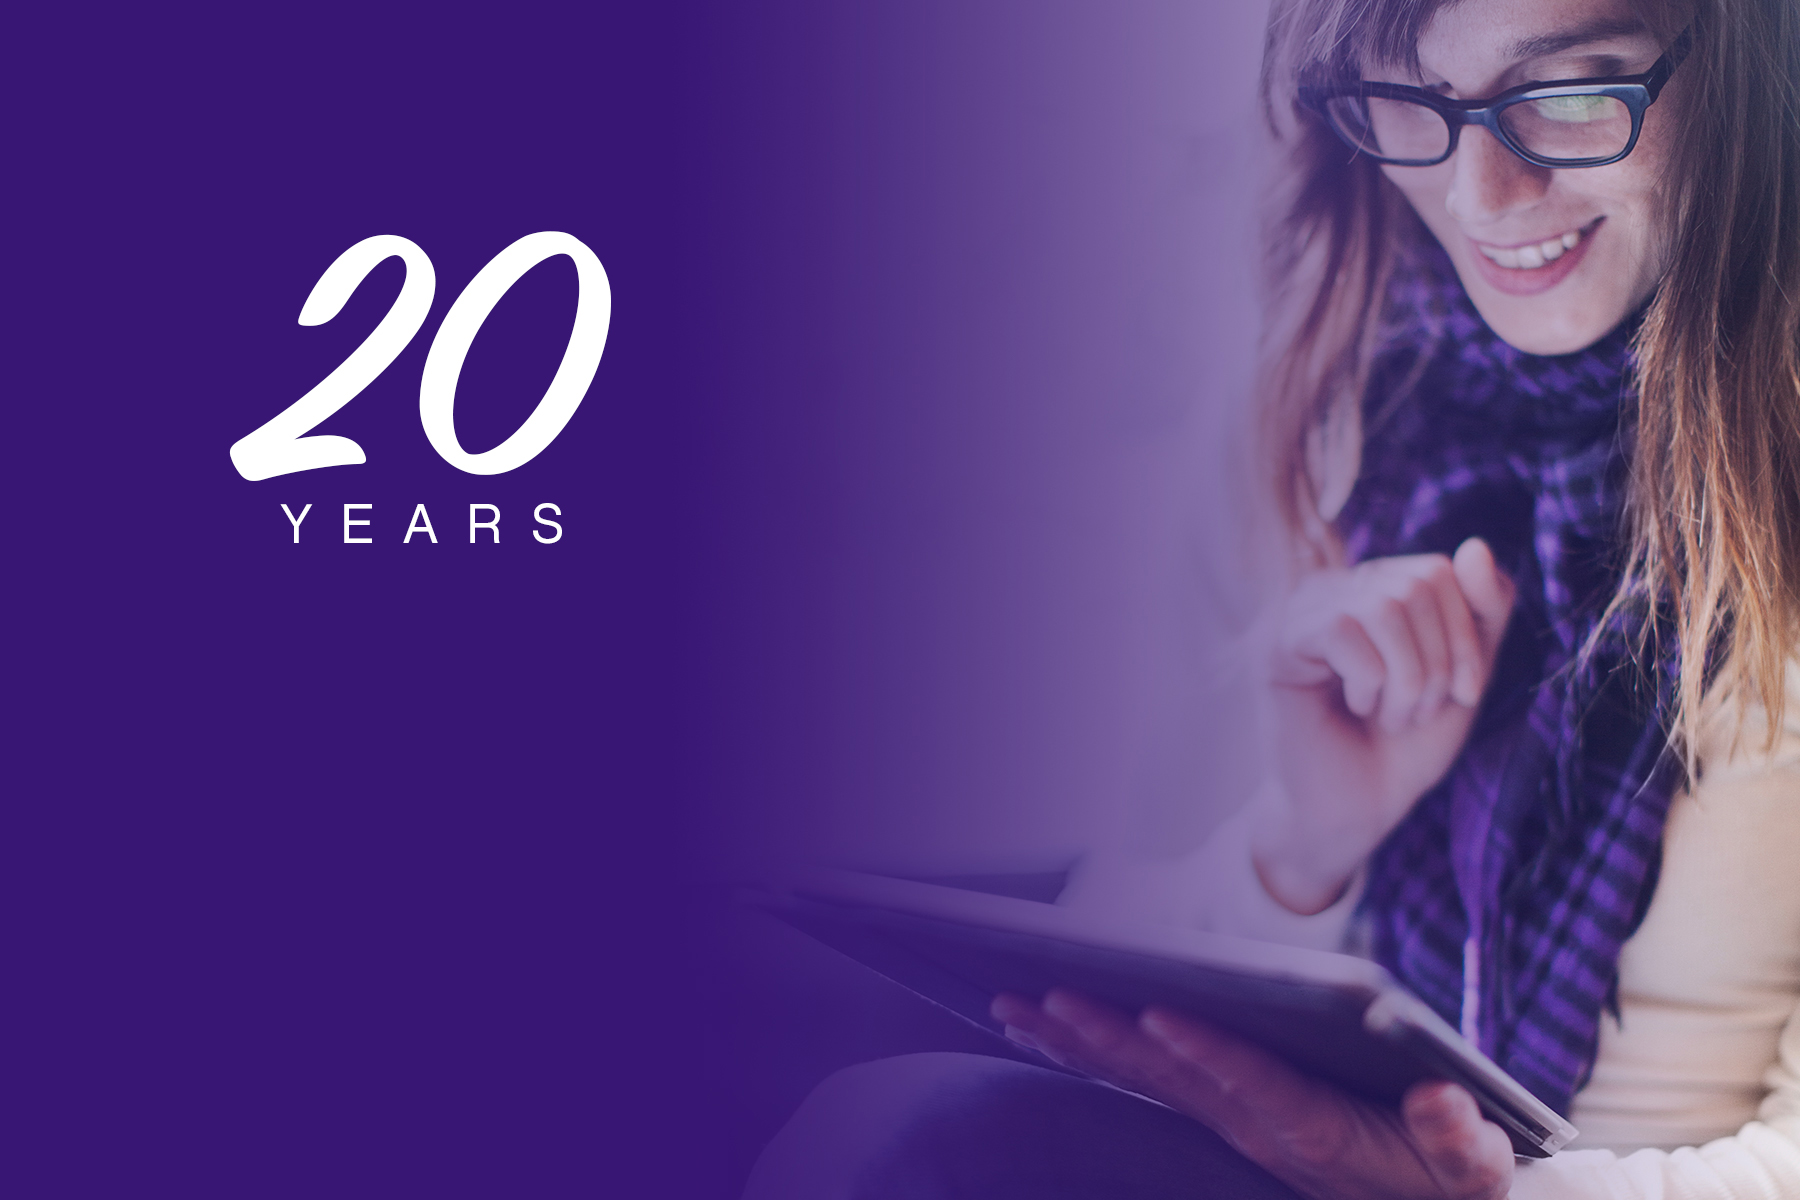 Driven by Members, Knowledge Beyond Boundaries: 20 Years of Live Online Learning